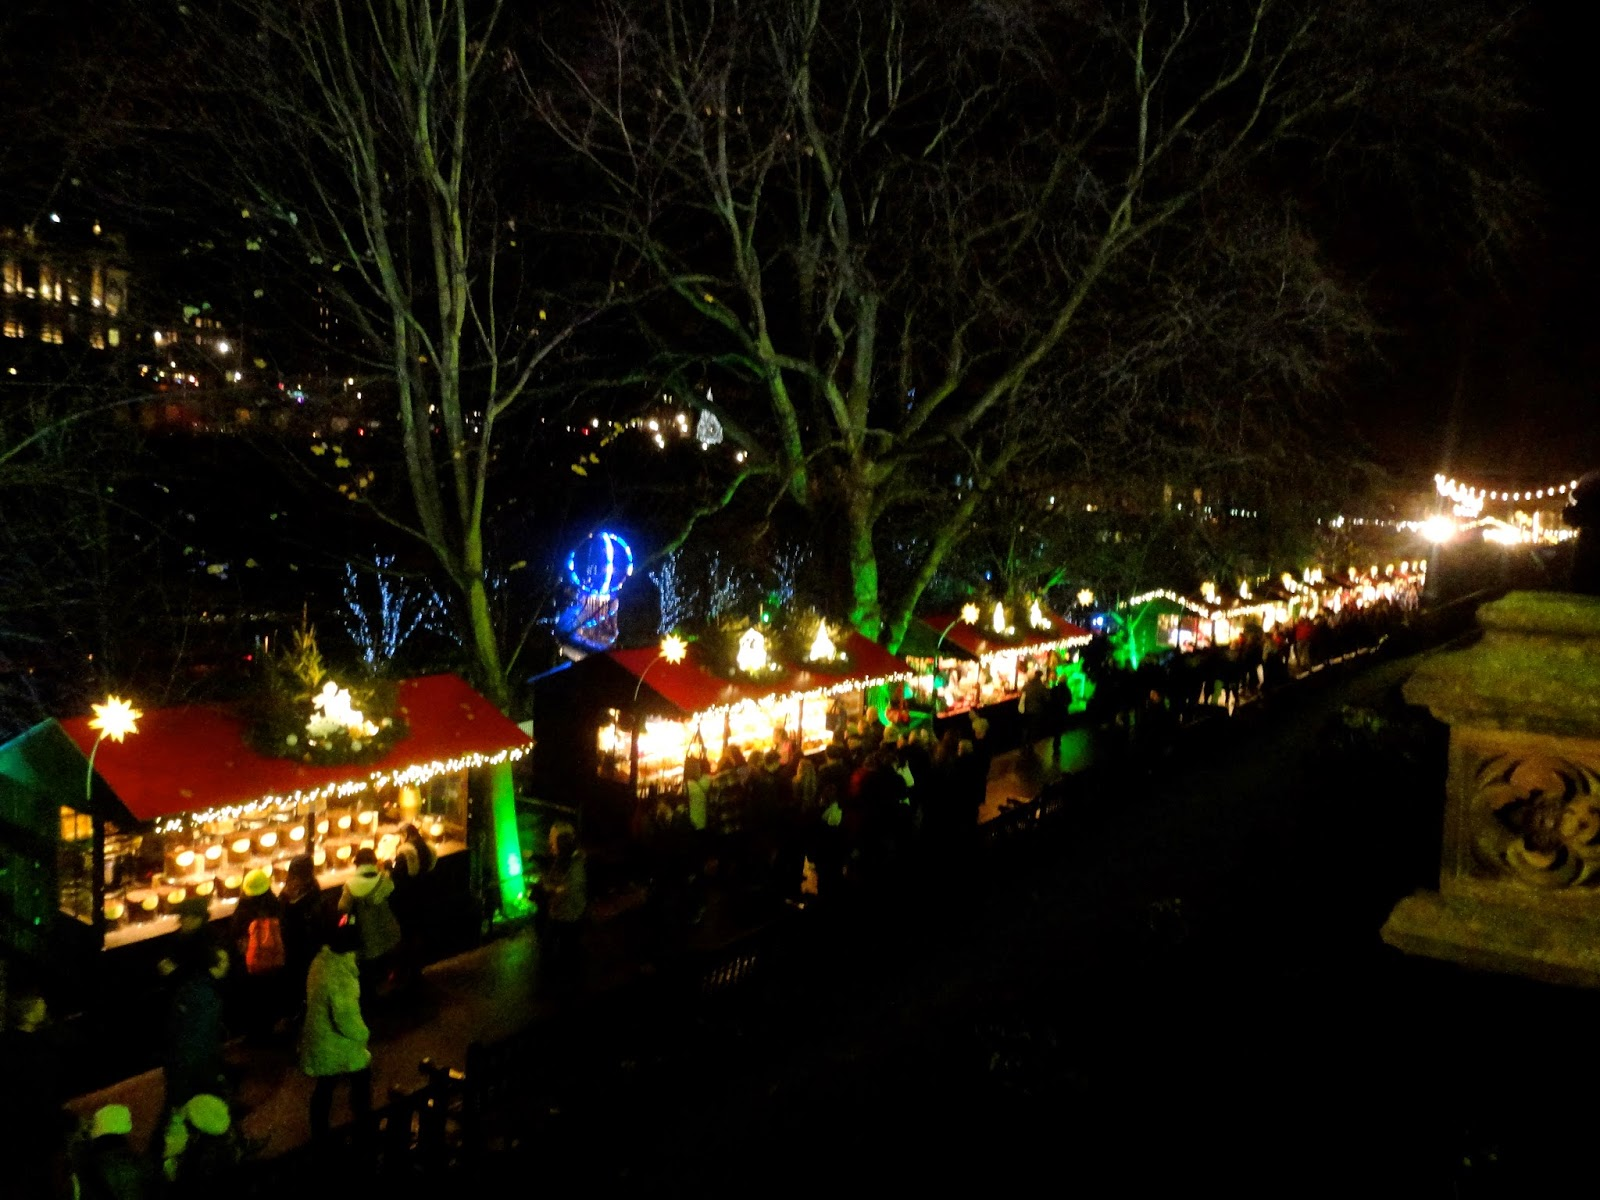 German market stalls in Edinburgh Winter Wonderland at Christmas in Princes Street Gardens